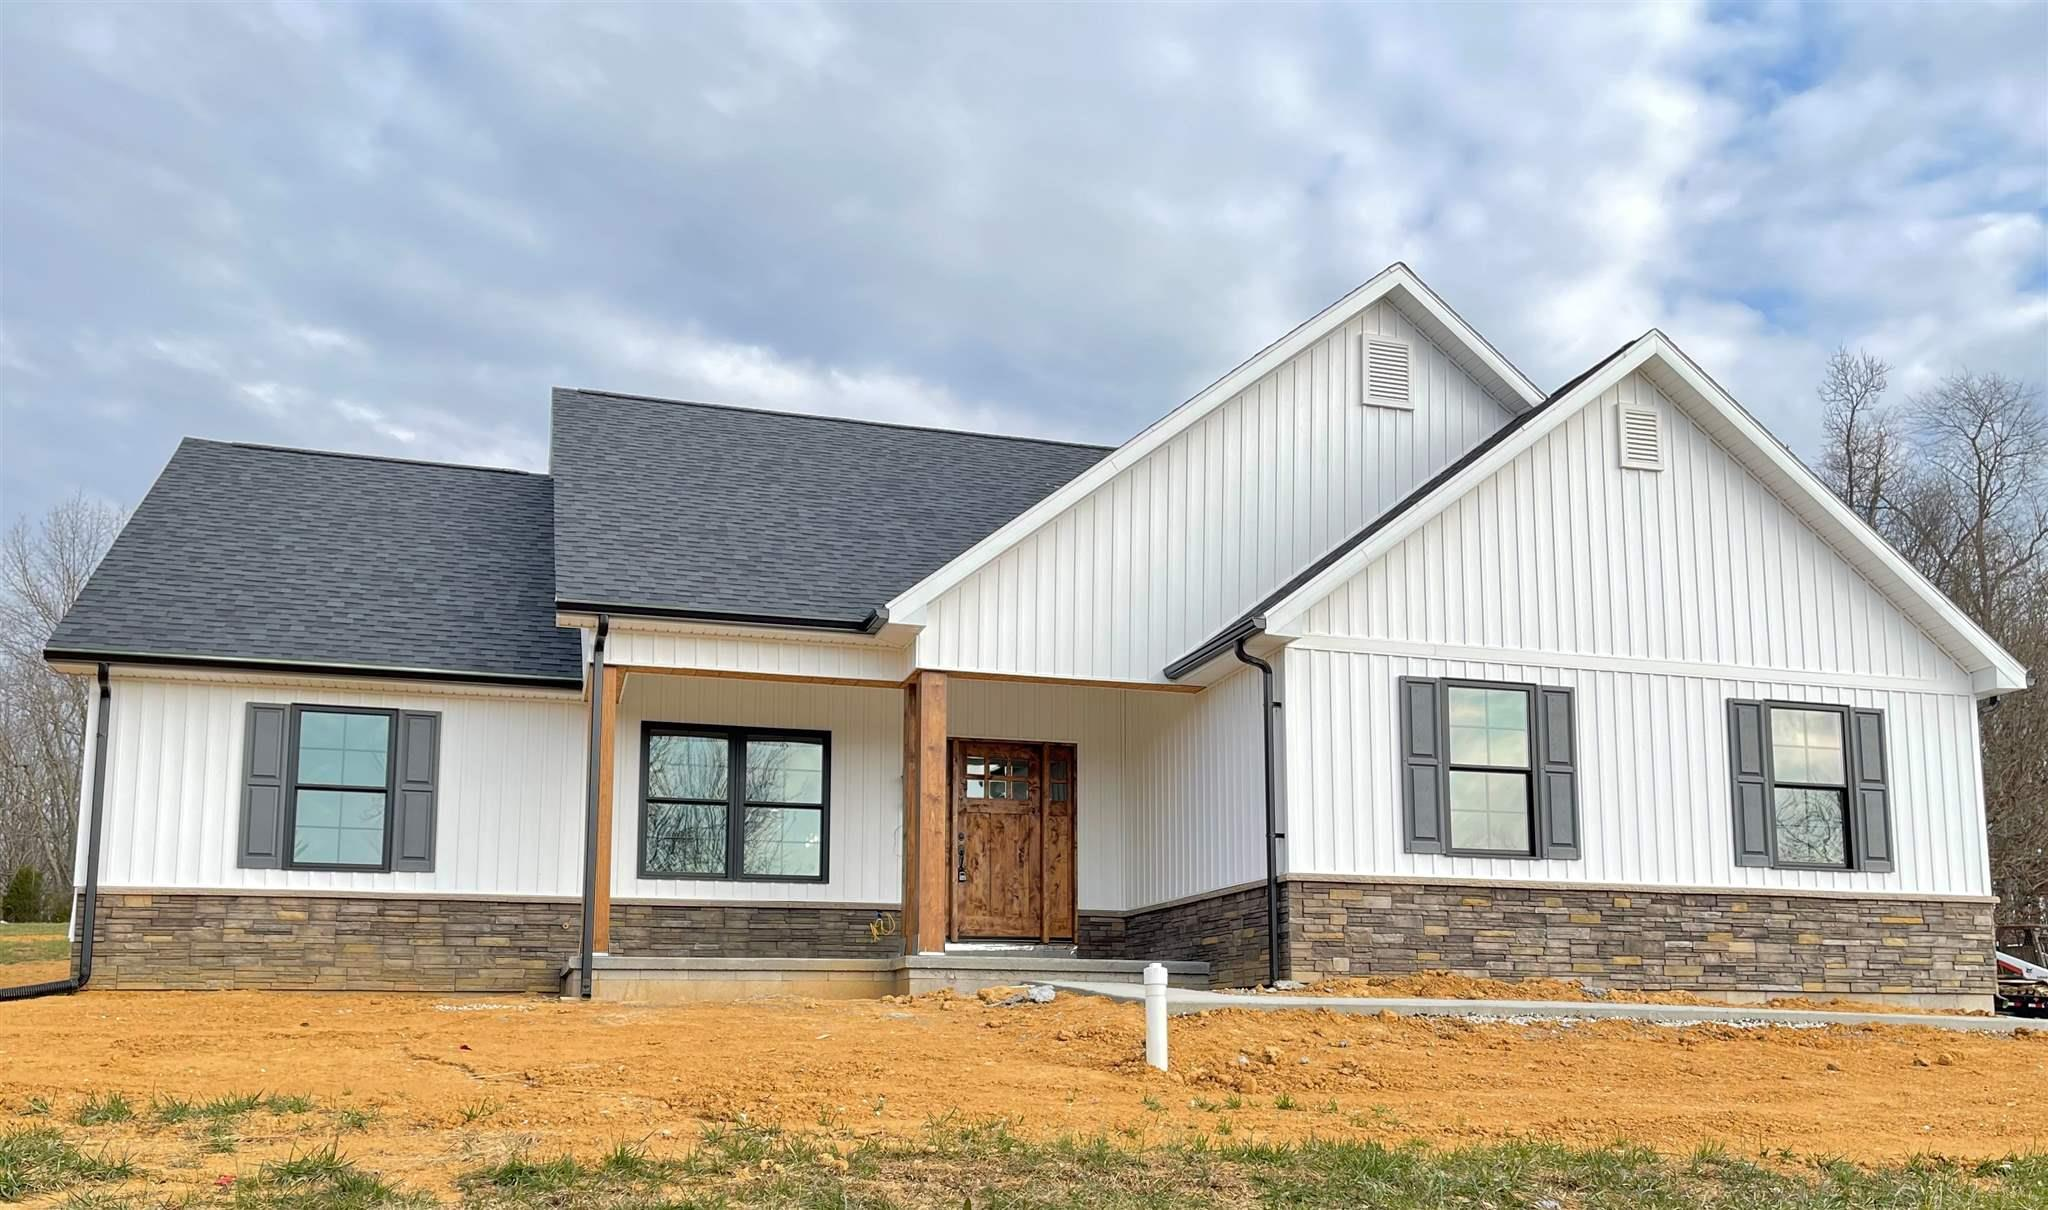 Brand New Construction!  3 bedroom, 2 full bath Craftsman style home on almost 1 acre with 2 car, side load garage.  Features include:  Open floorplan, split bedroom concept, master bedroom with tray ceiling and walk in closet.  Master bath includes double vanities and tiled shower.